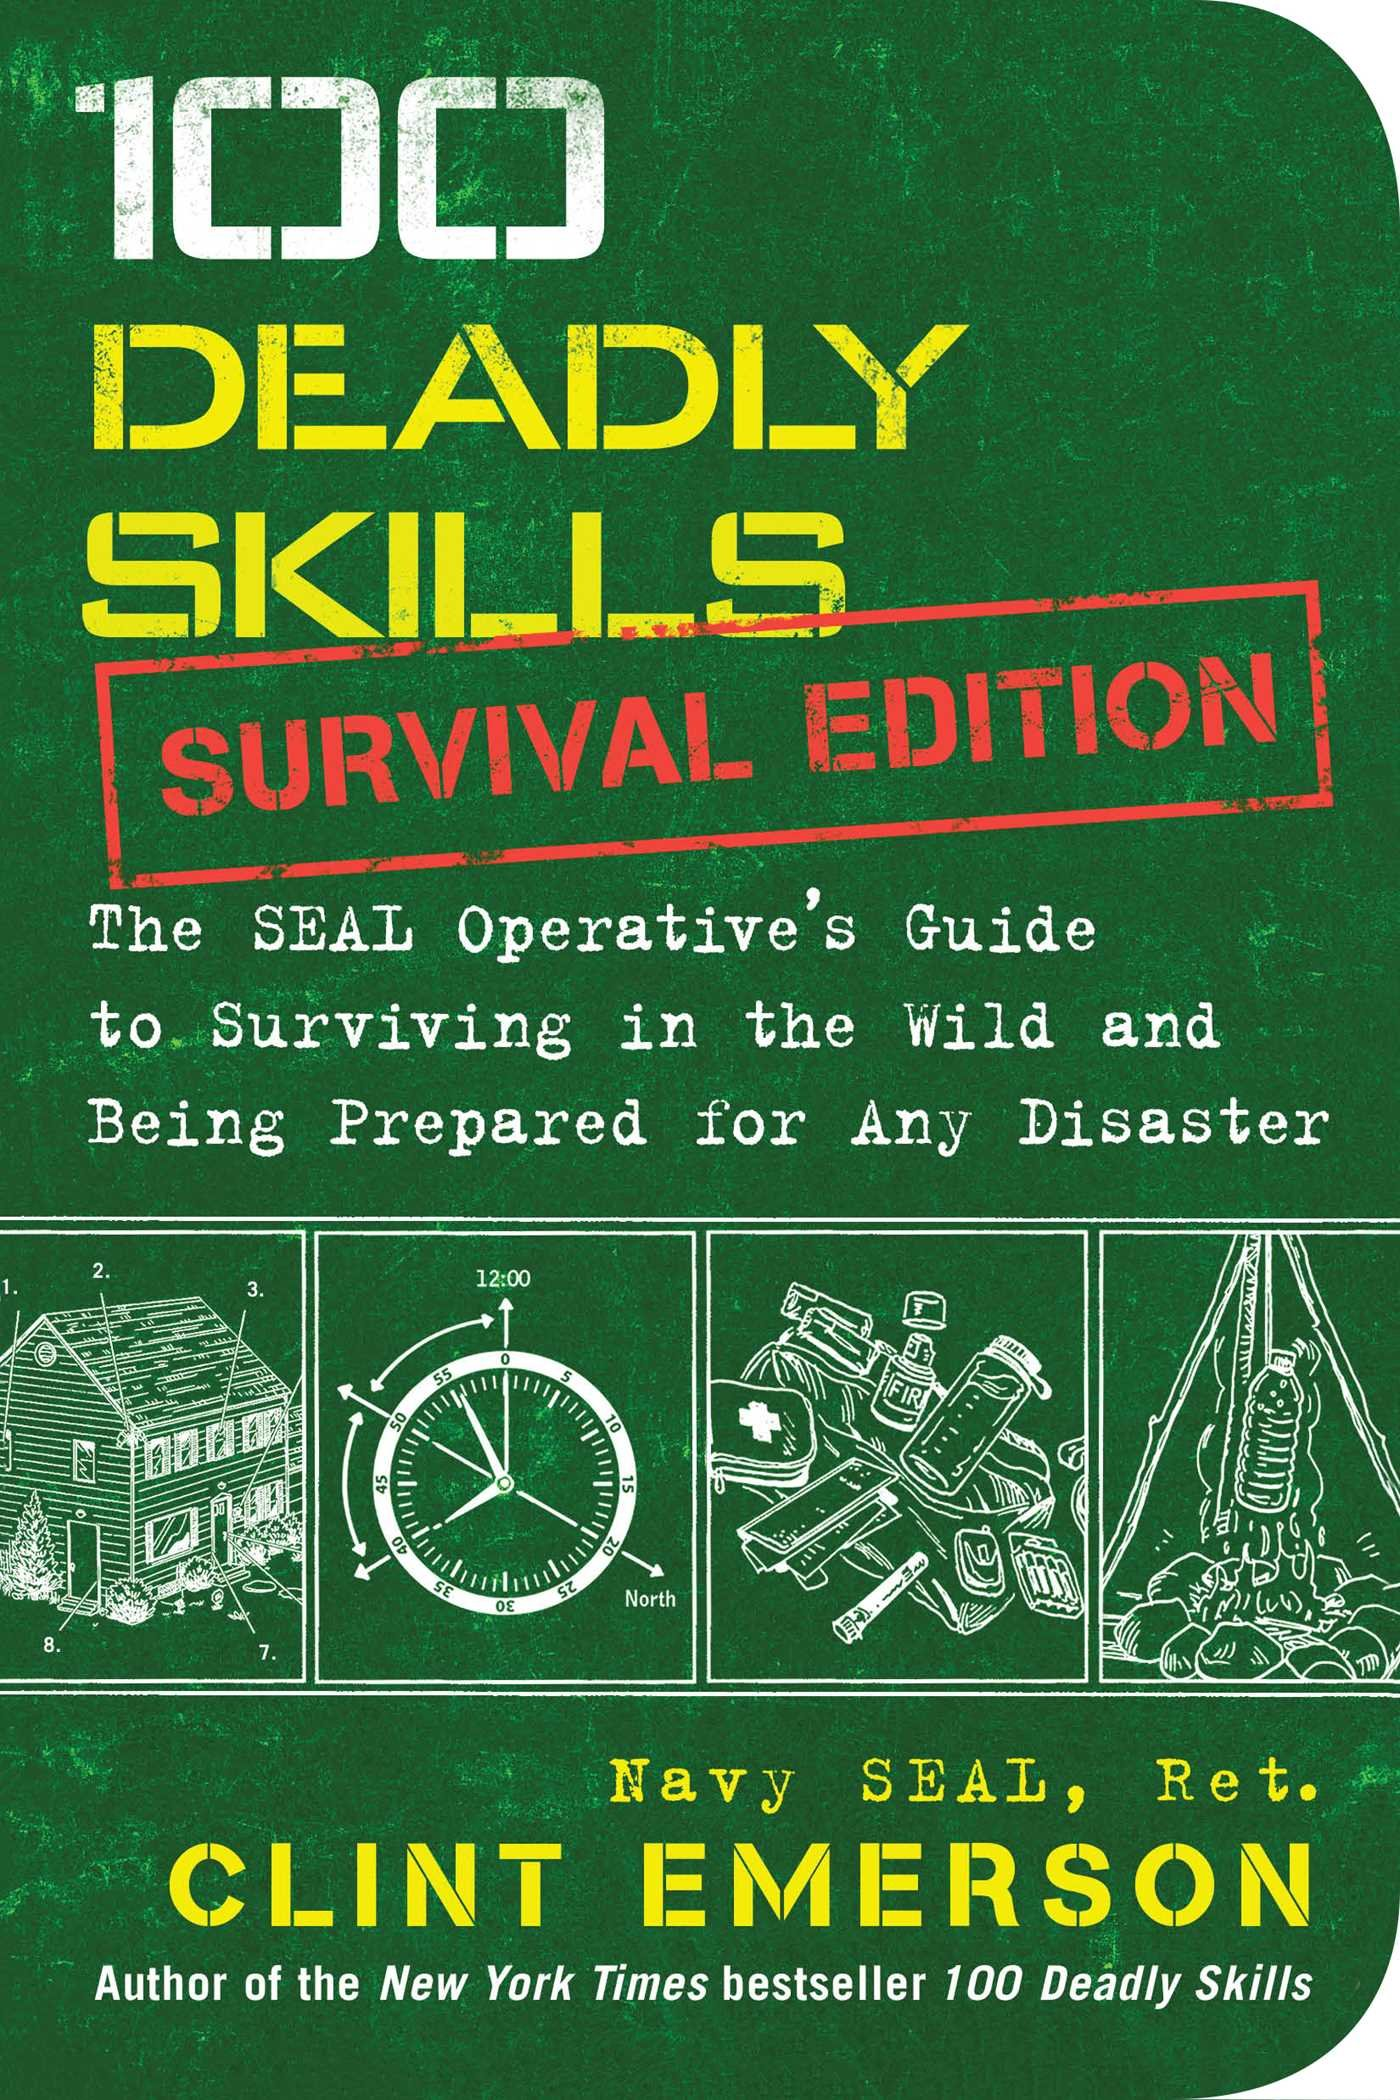 100 Deadly Skills: Survival Edition: The SEAL Operative's Guide to Surviving  in the Wild and Being Prepared for Any Disaster: Clint Emerson:  9781501143908: ...